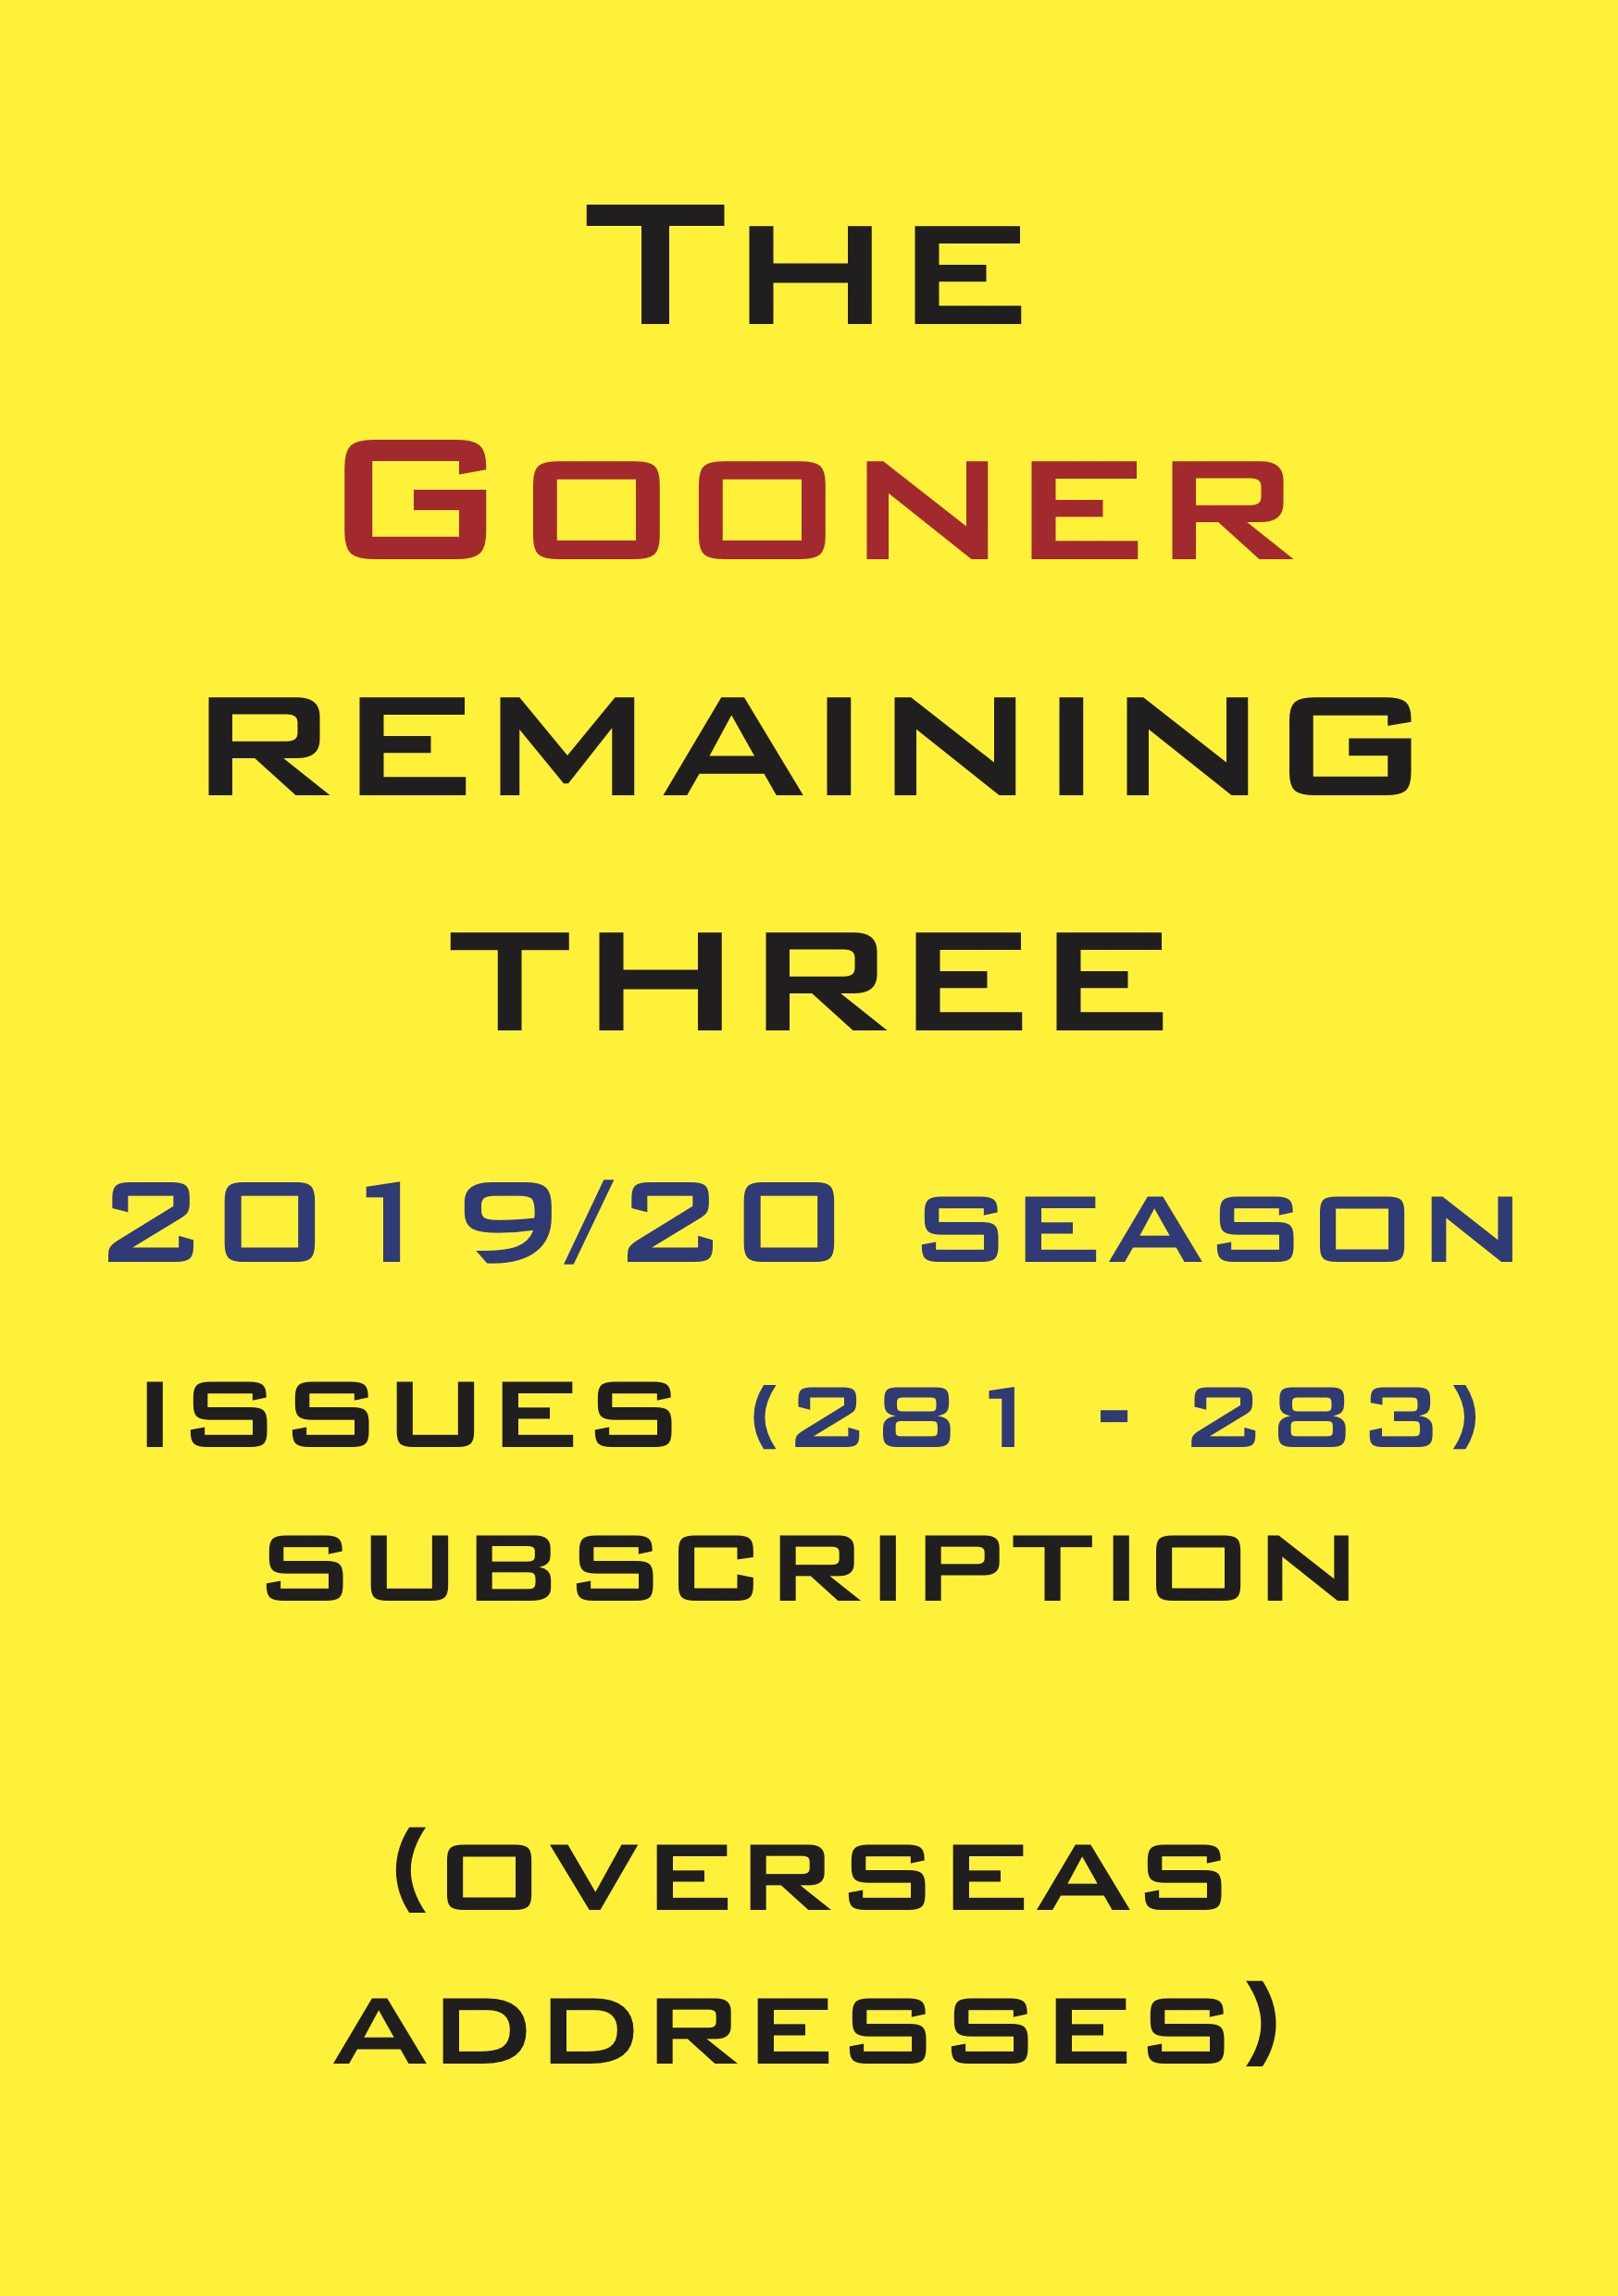 1f. The Gooner! - 3 remaining 2019/20 issues subscription Abroad